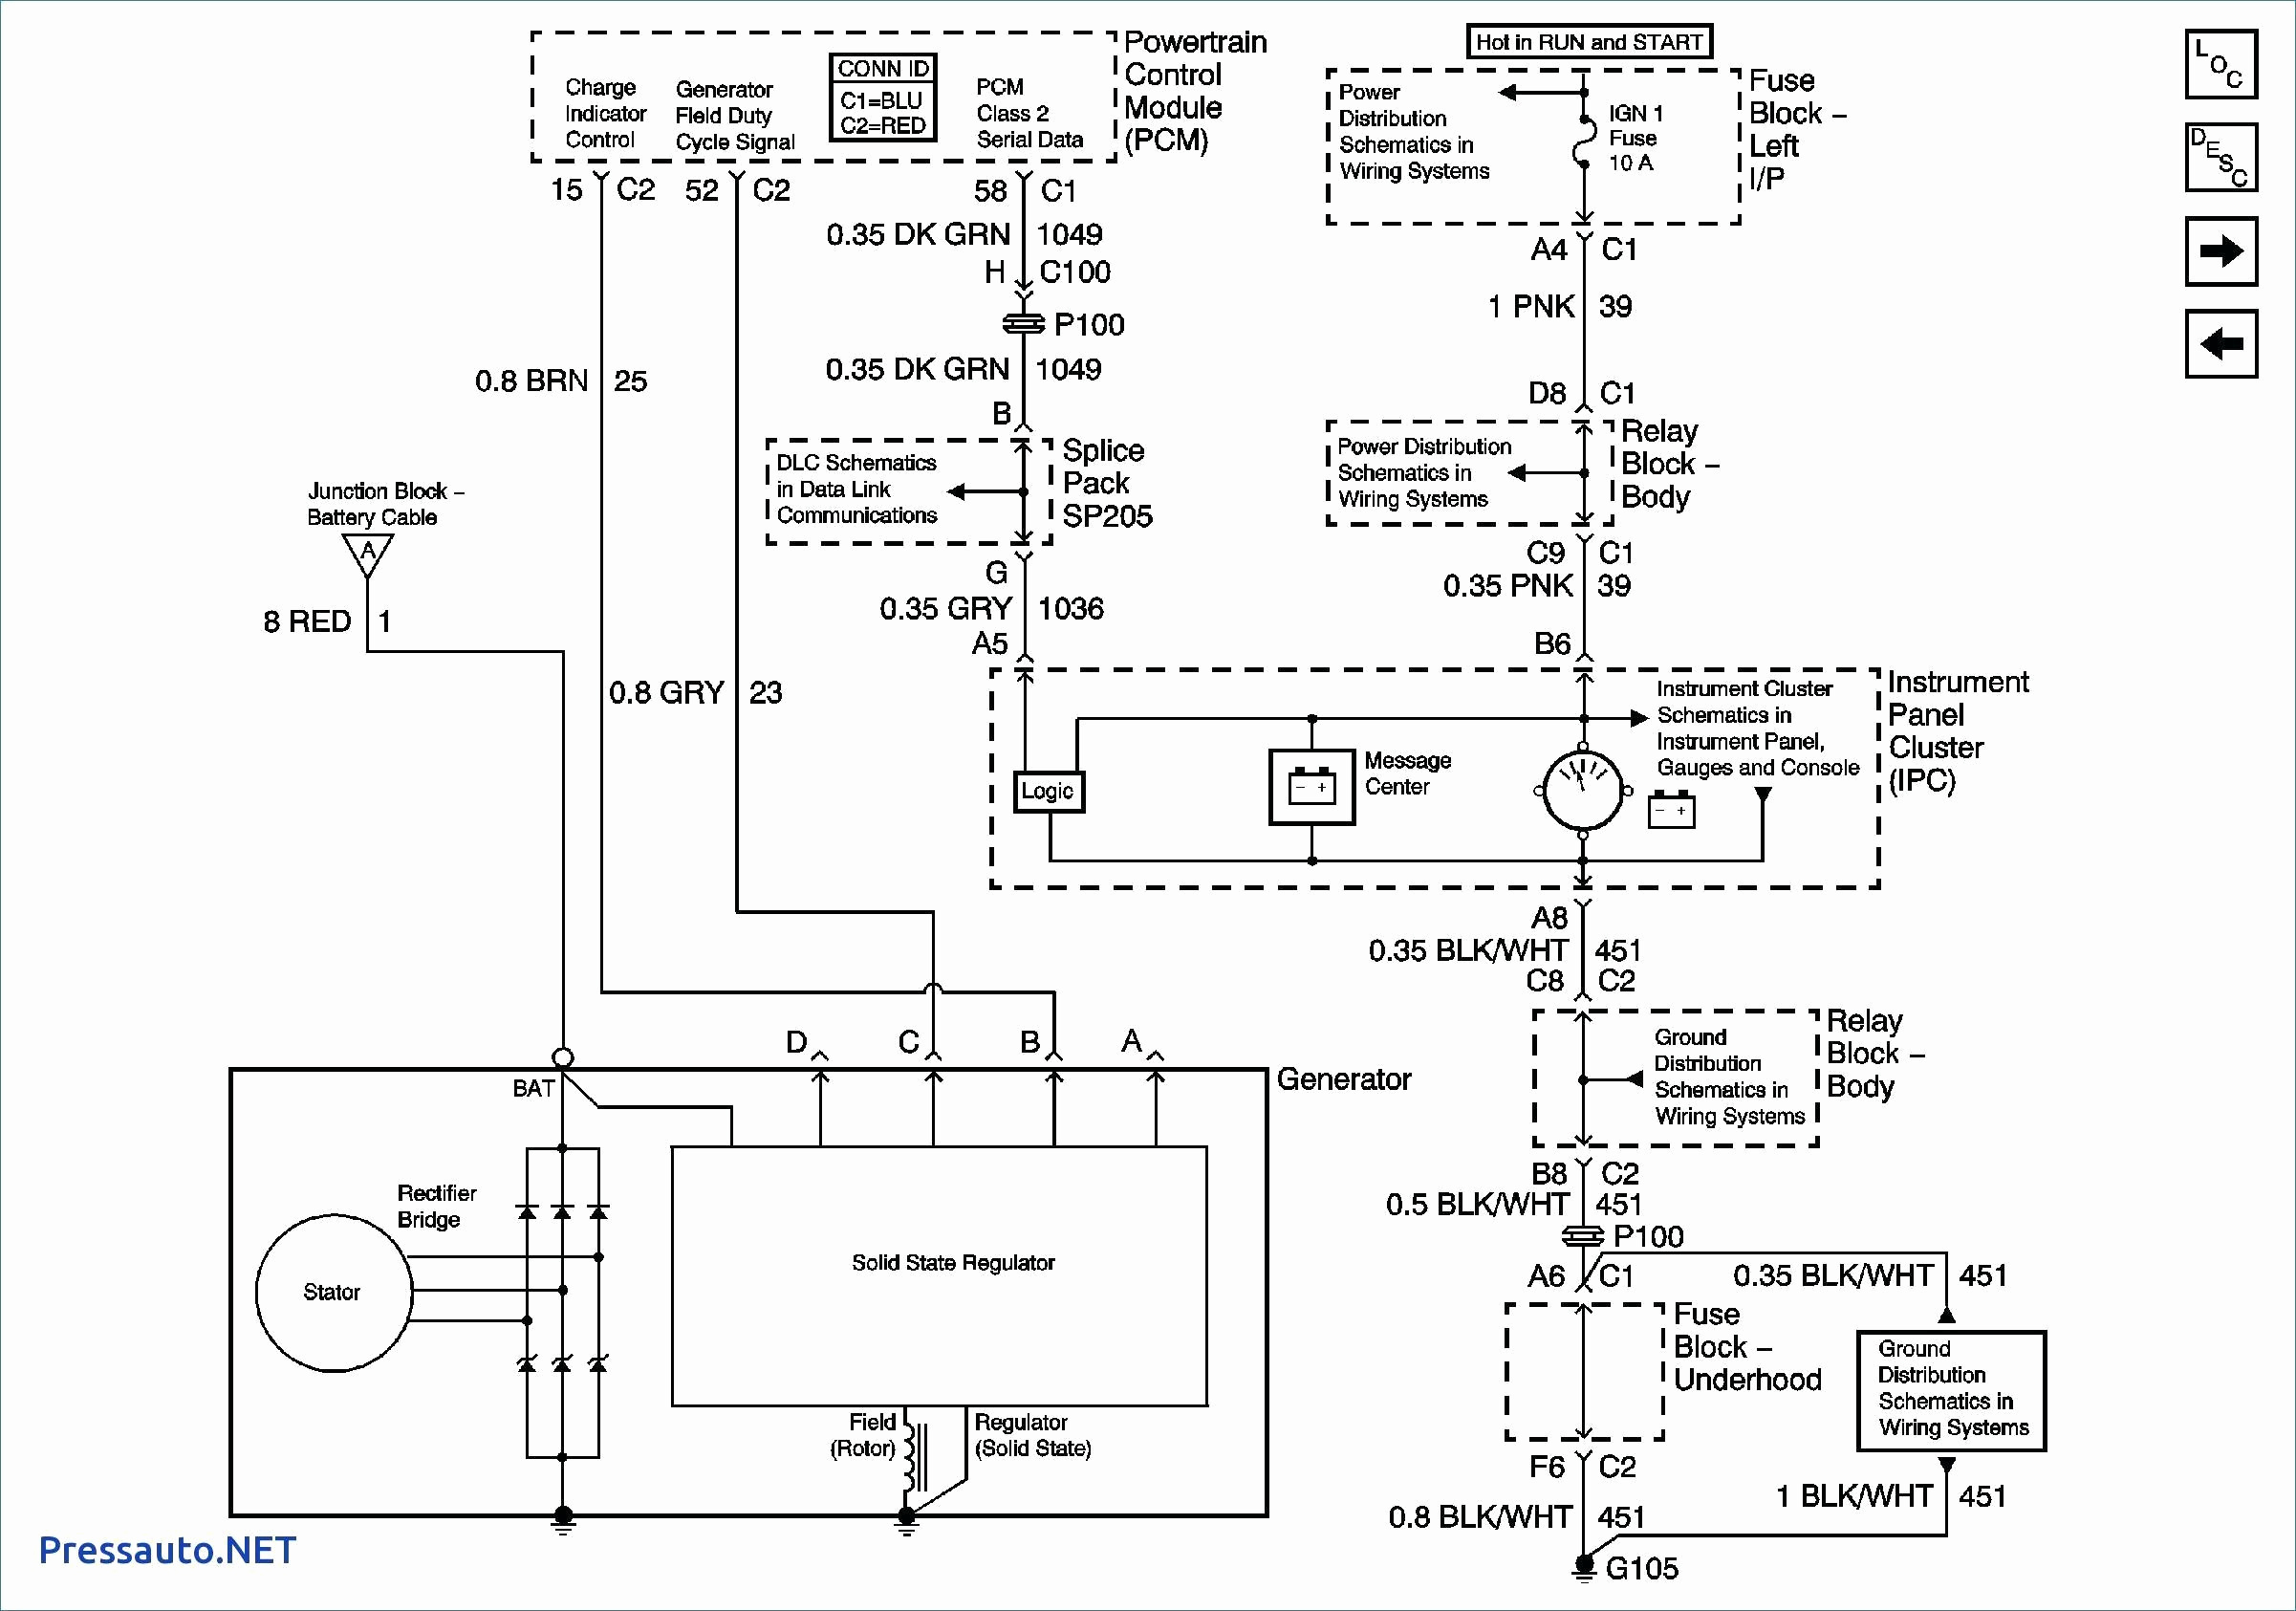 50 Unique Genie Garage Door Sensor - Oneskor - Genie Garage Door Sensor Wiring Diagram